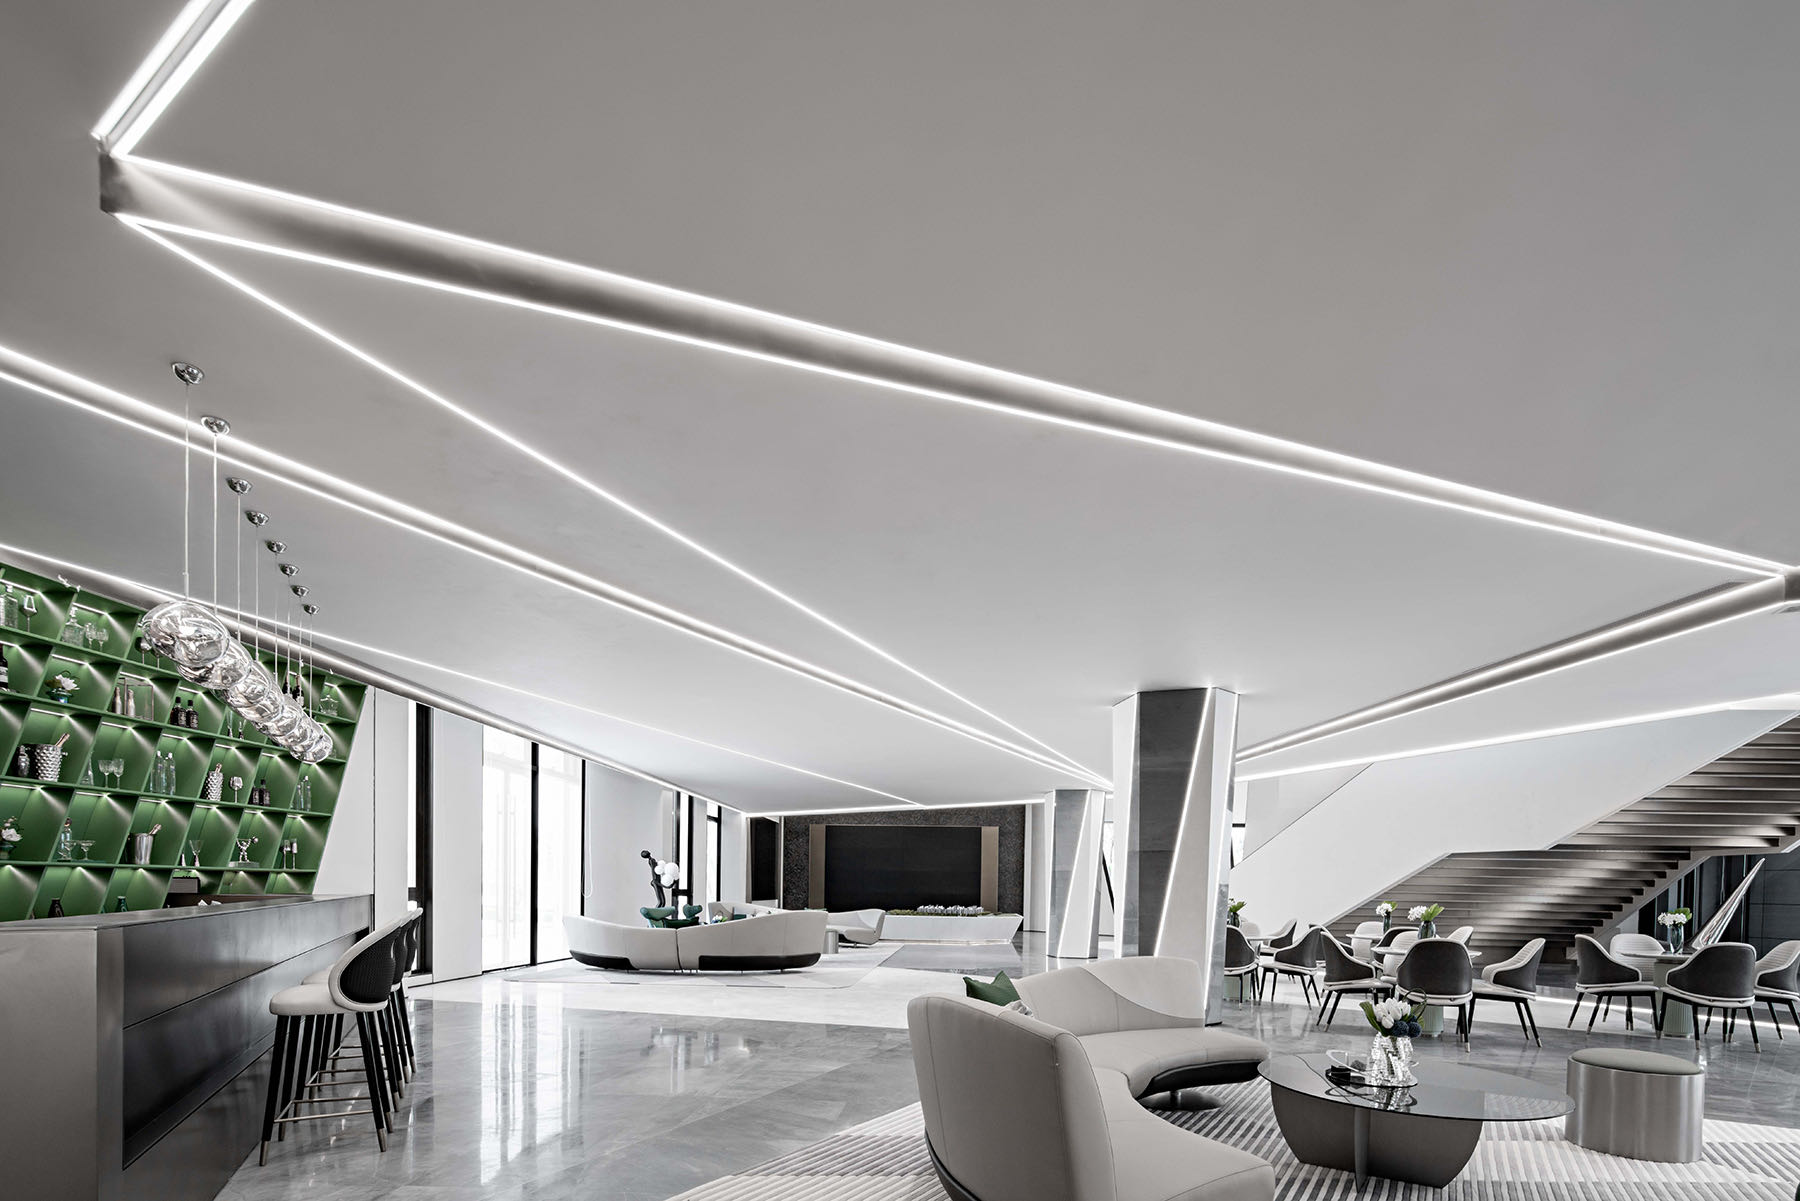 private-company-offices-shanghai-7